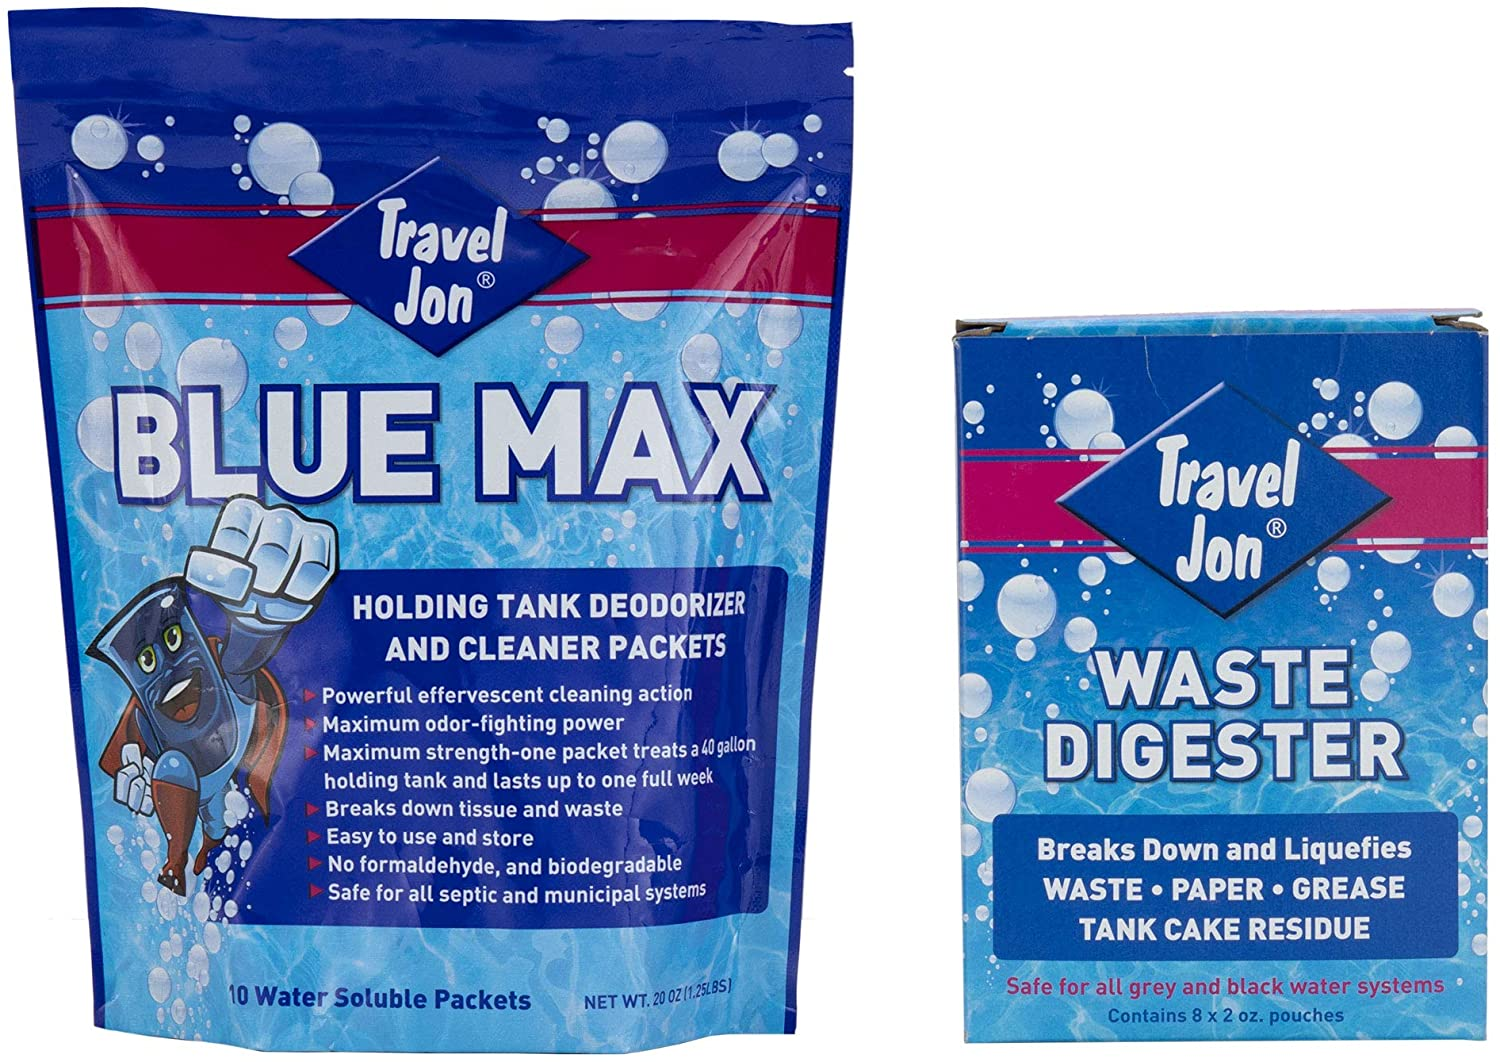 Travel Jon Blue Max Toss-in and Waste Digester Combo | RV Tank Treatment | RV Holding Tank Deodorizer | RV Toilet | Breaks Down Waste and Other Materials